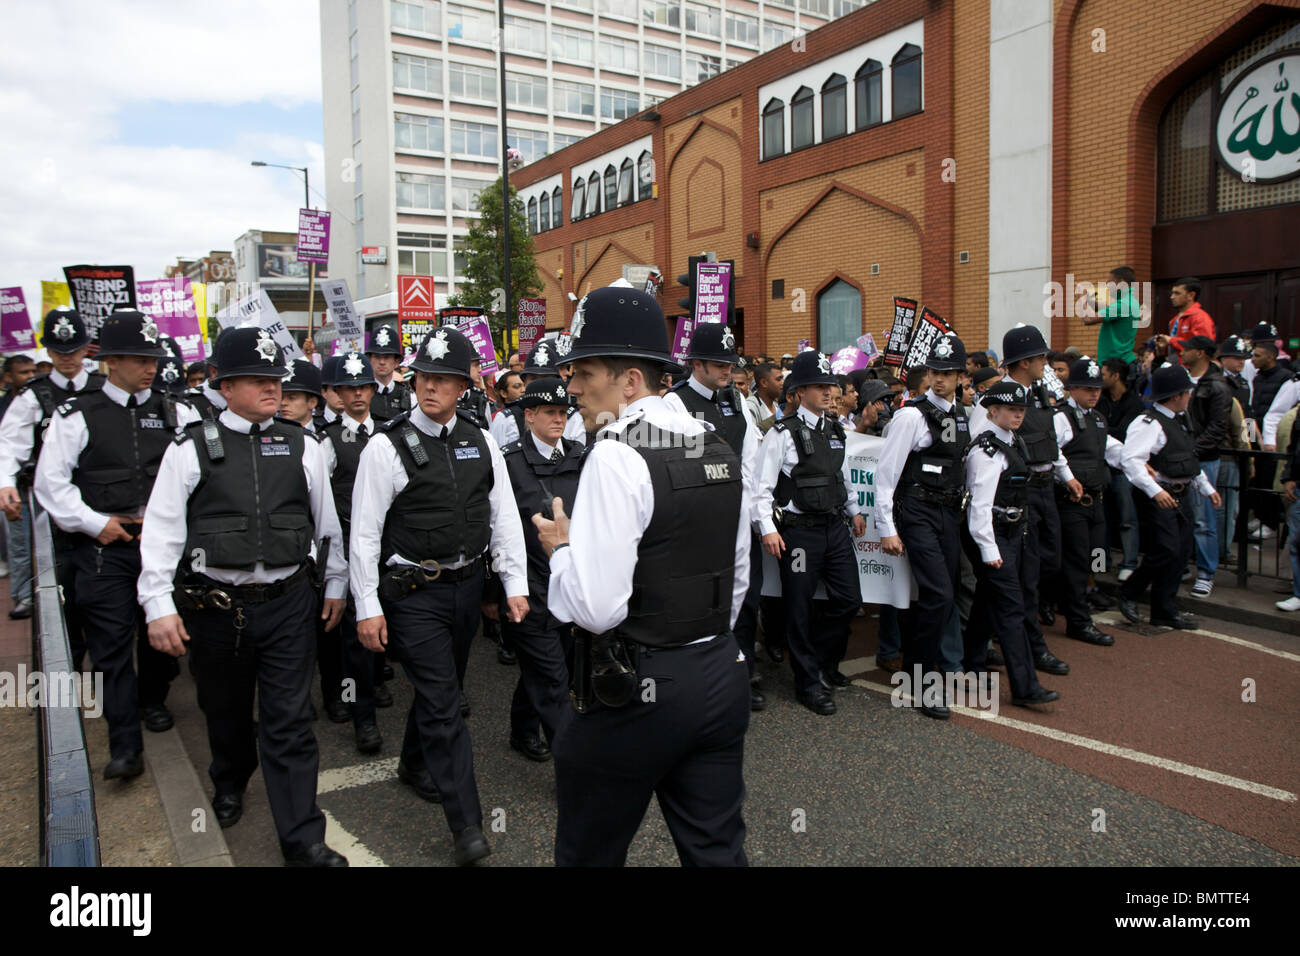 Anti fascist protest march through east London, England, UK. - Stock Image